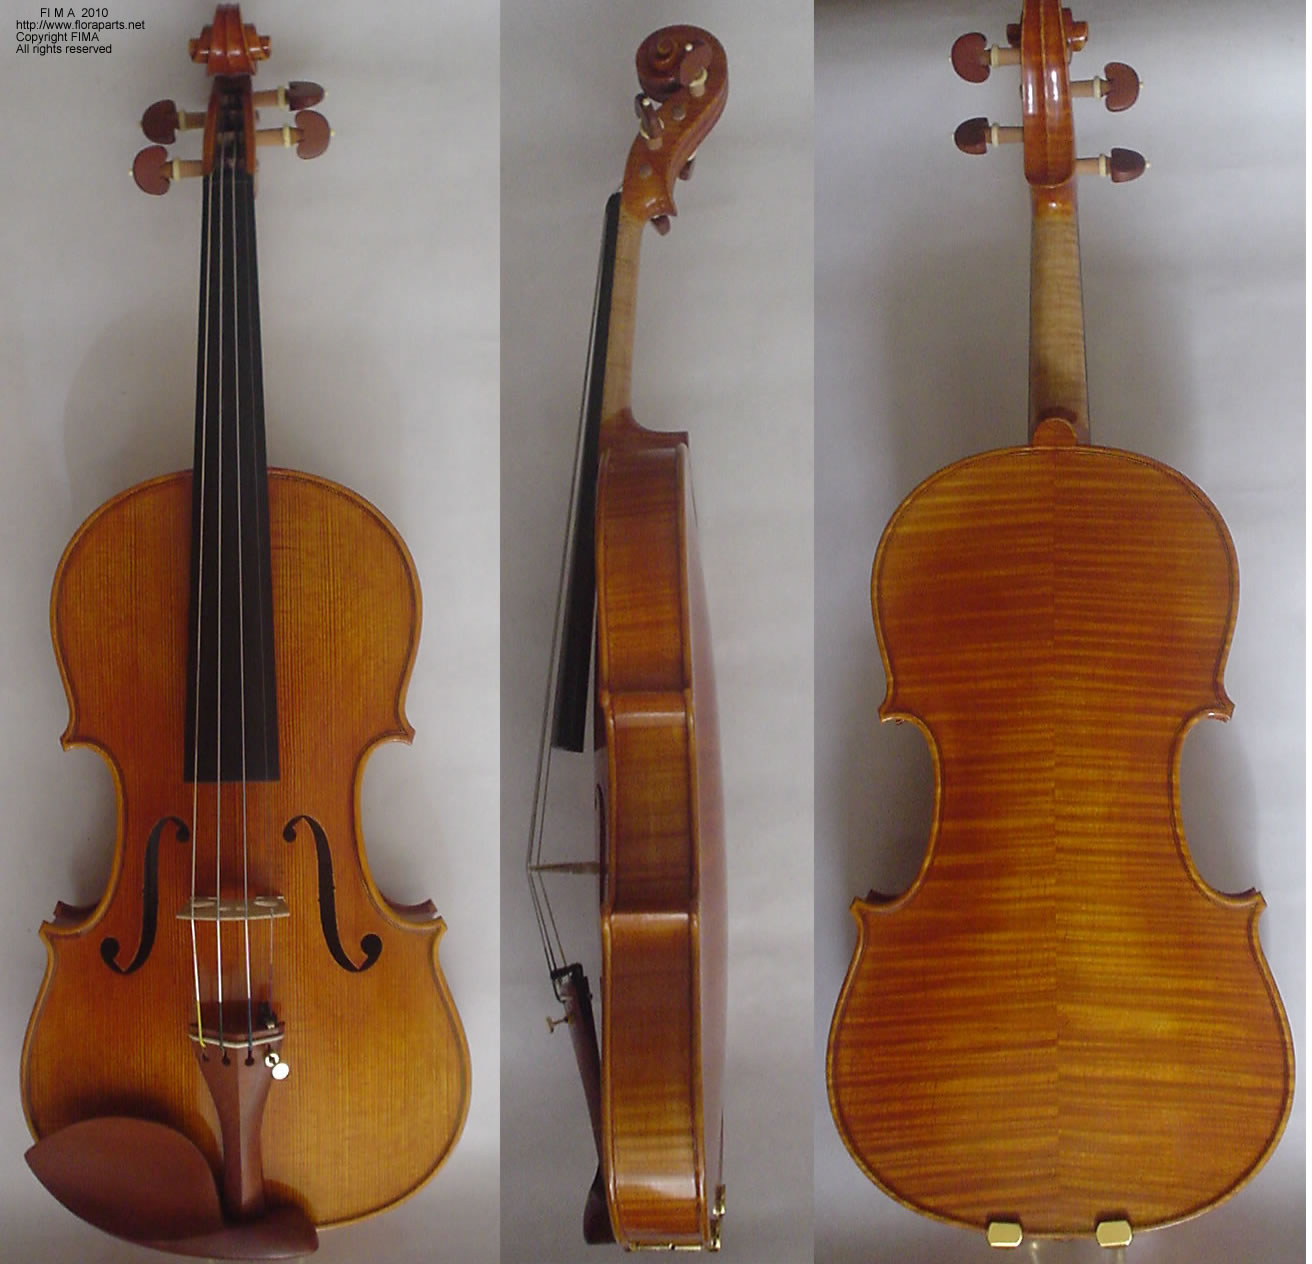 FIMA Master Antiqued Violin Series   Model  FPA